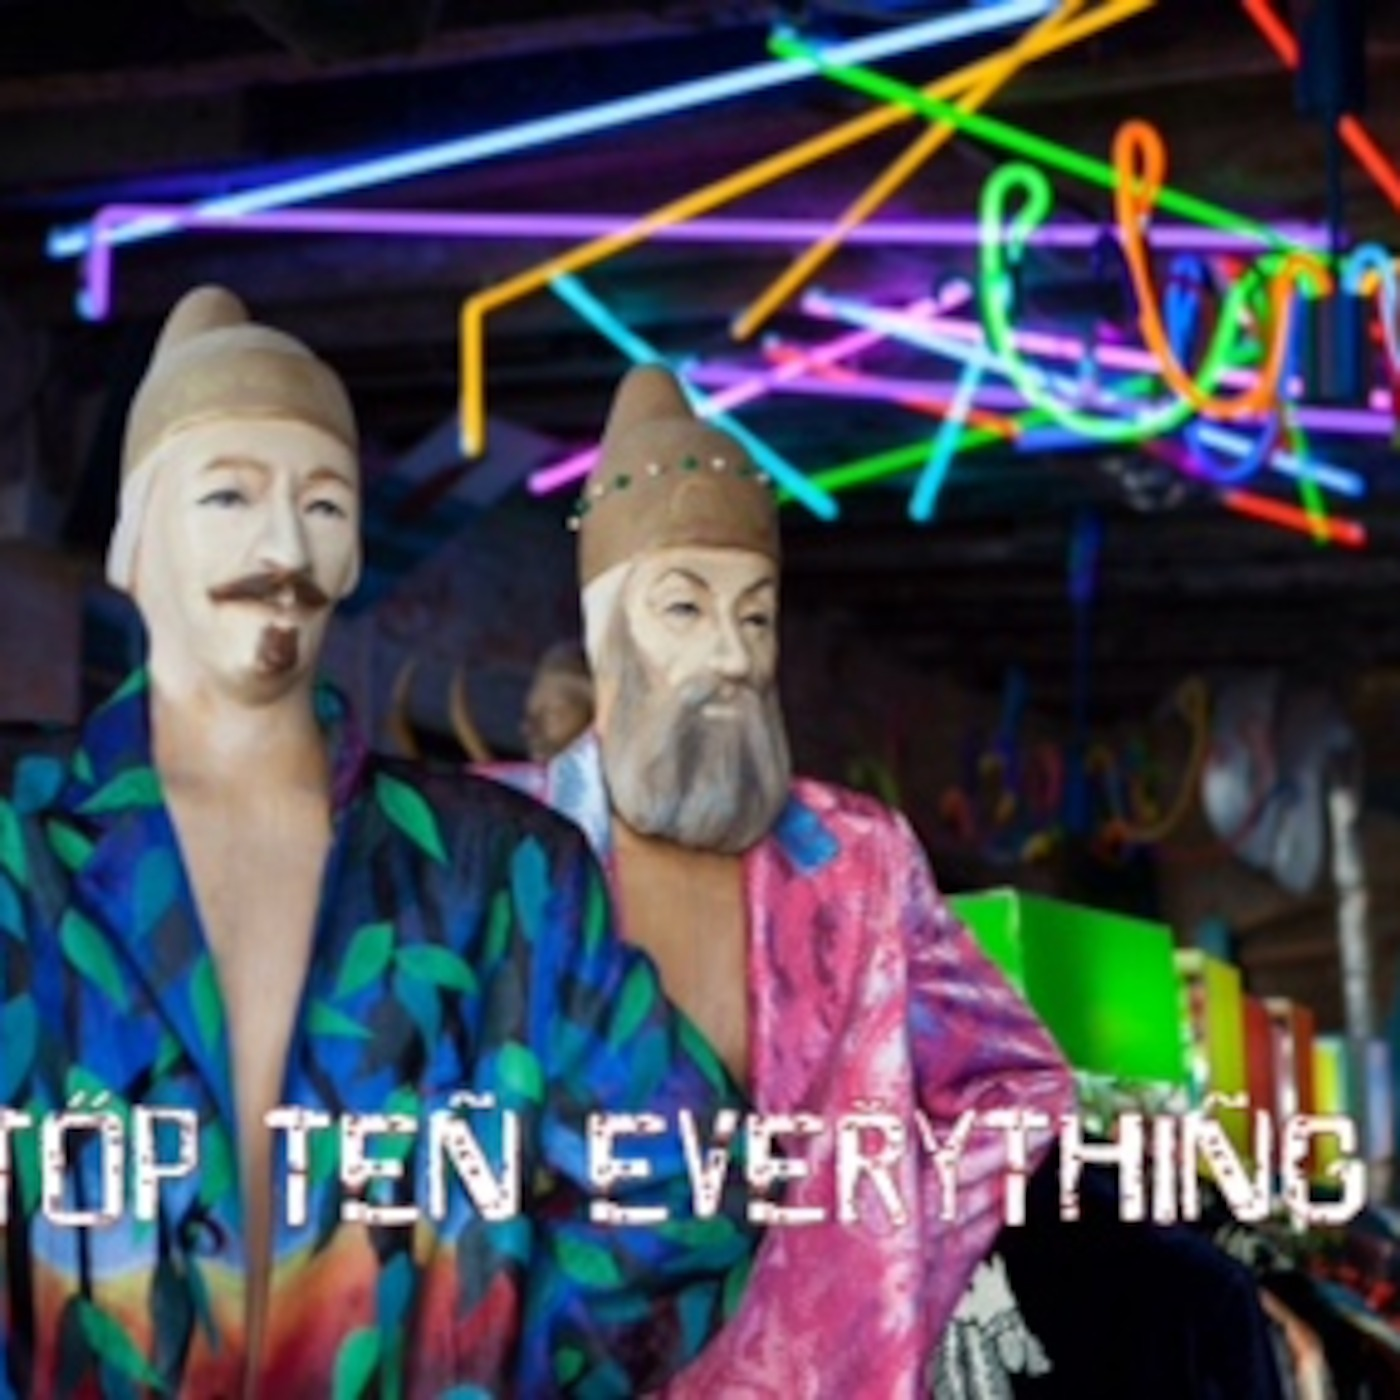 Top Ten Everything